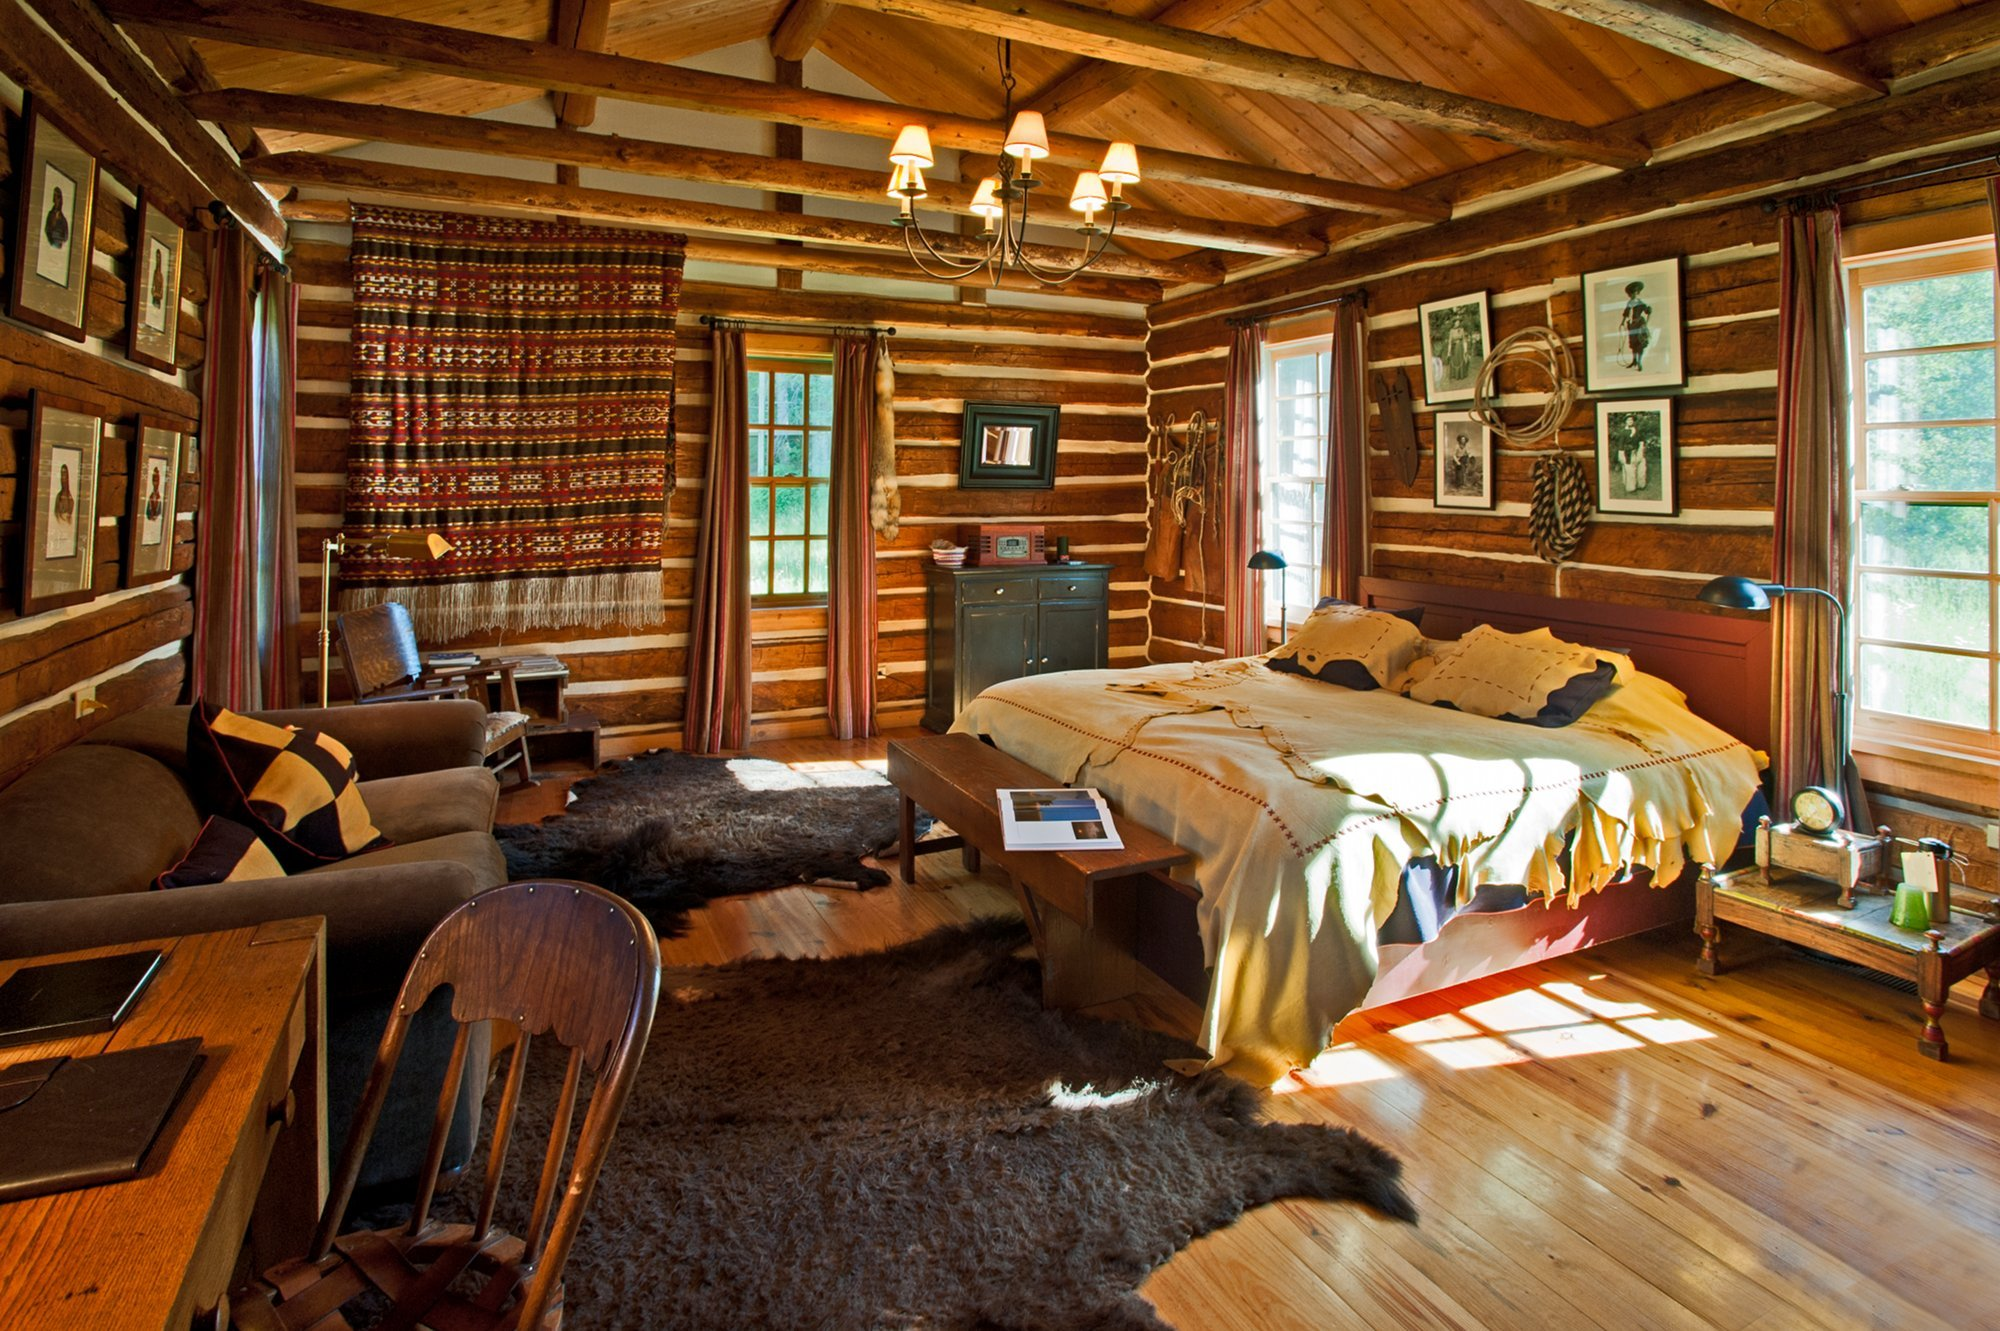 beautifully-idea-country-house-interior-design-ideas-1000-about-small-cottage-interiors-on-pinterest-fregadero-on-home.jpg